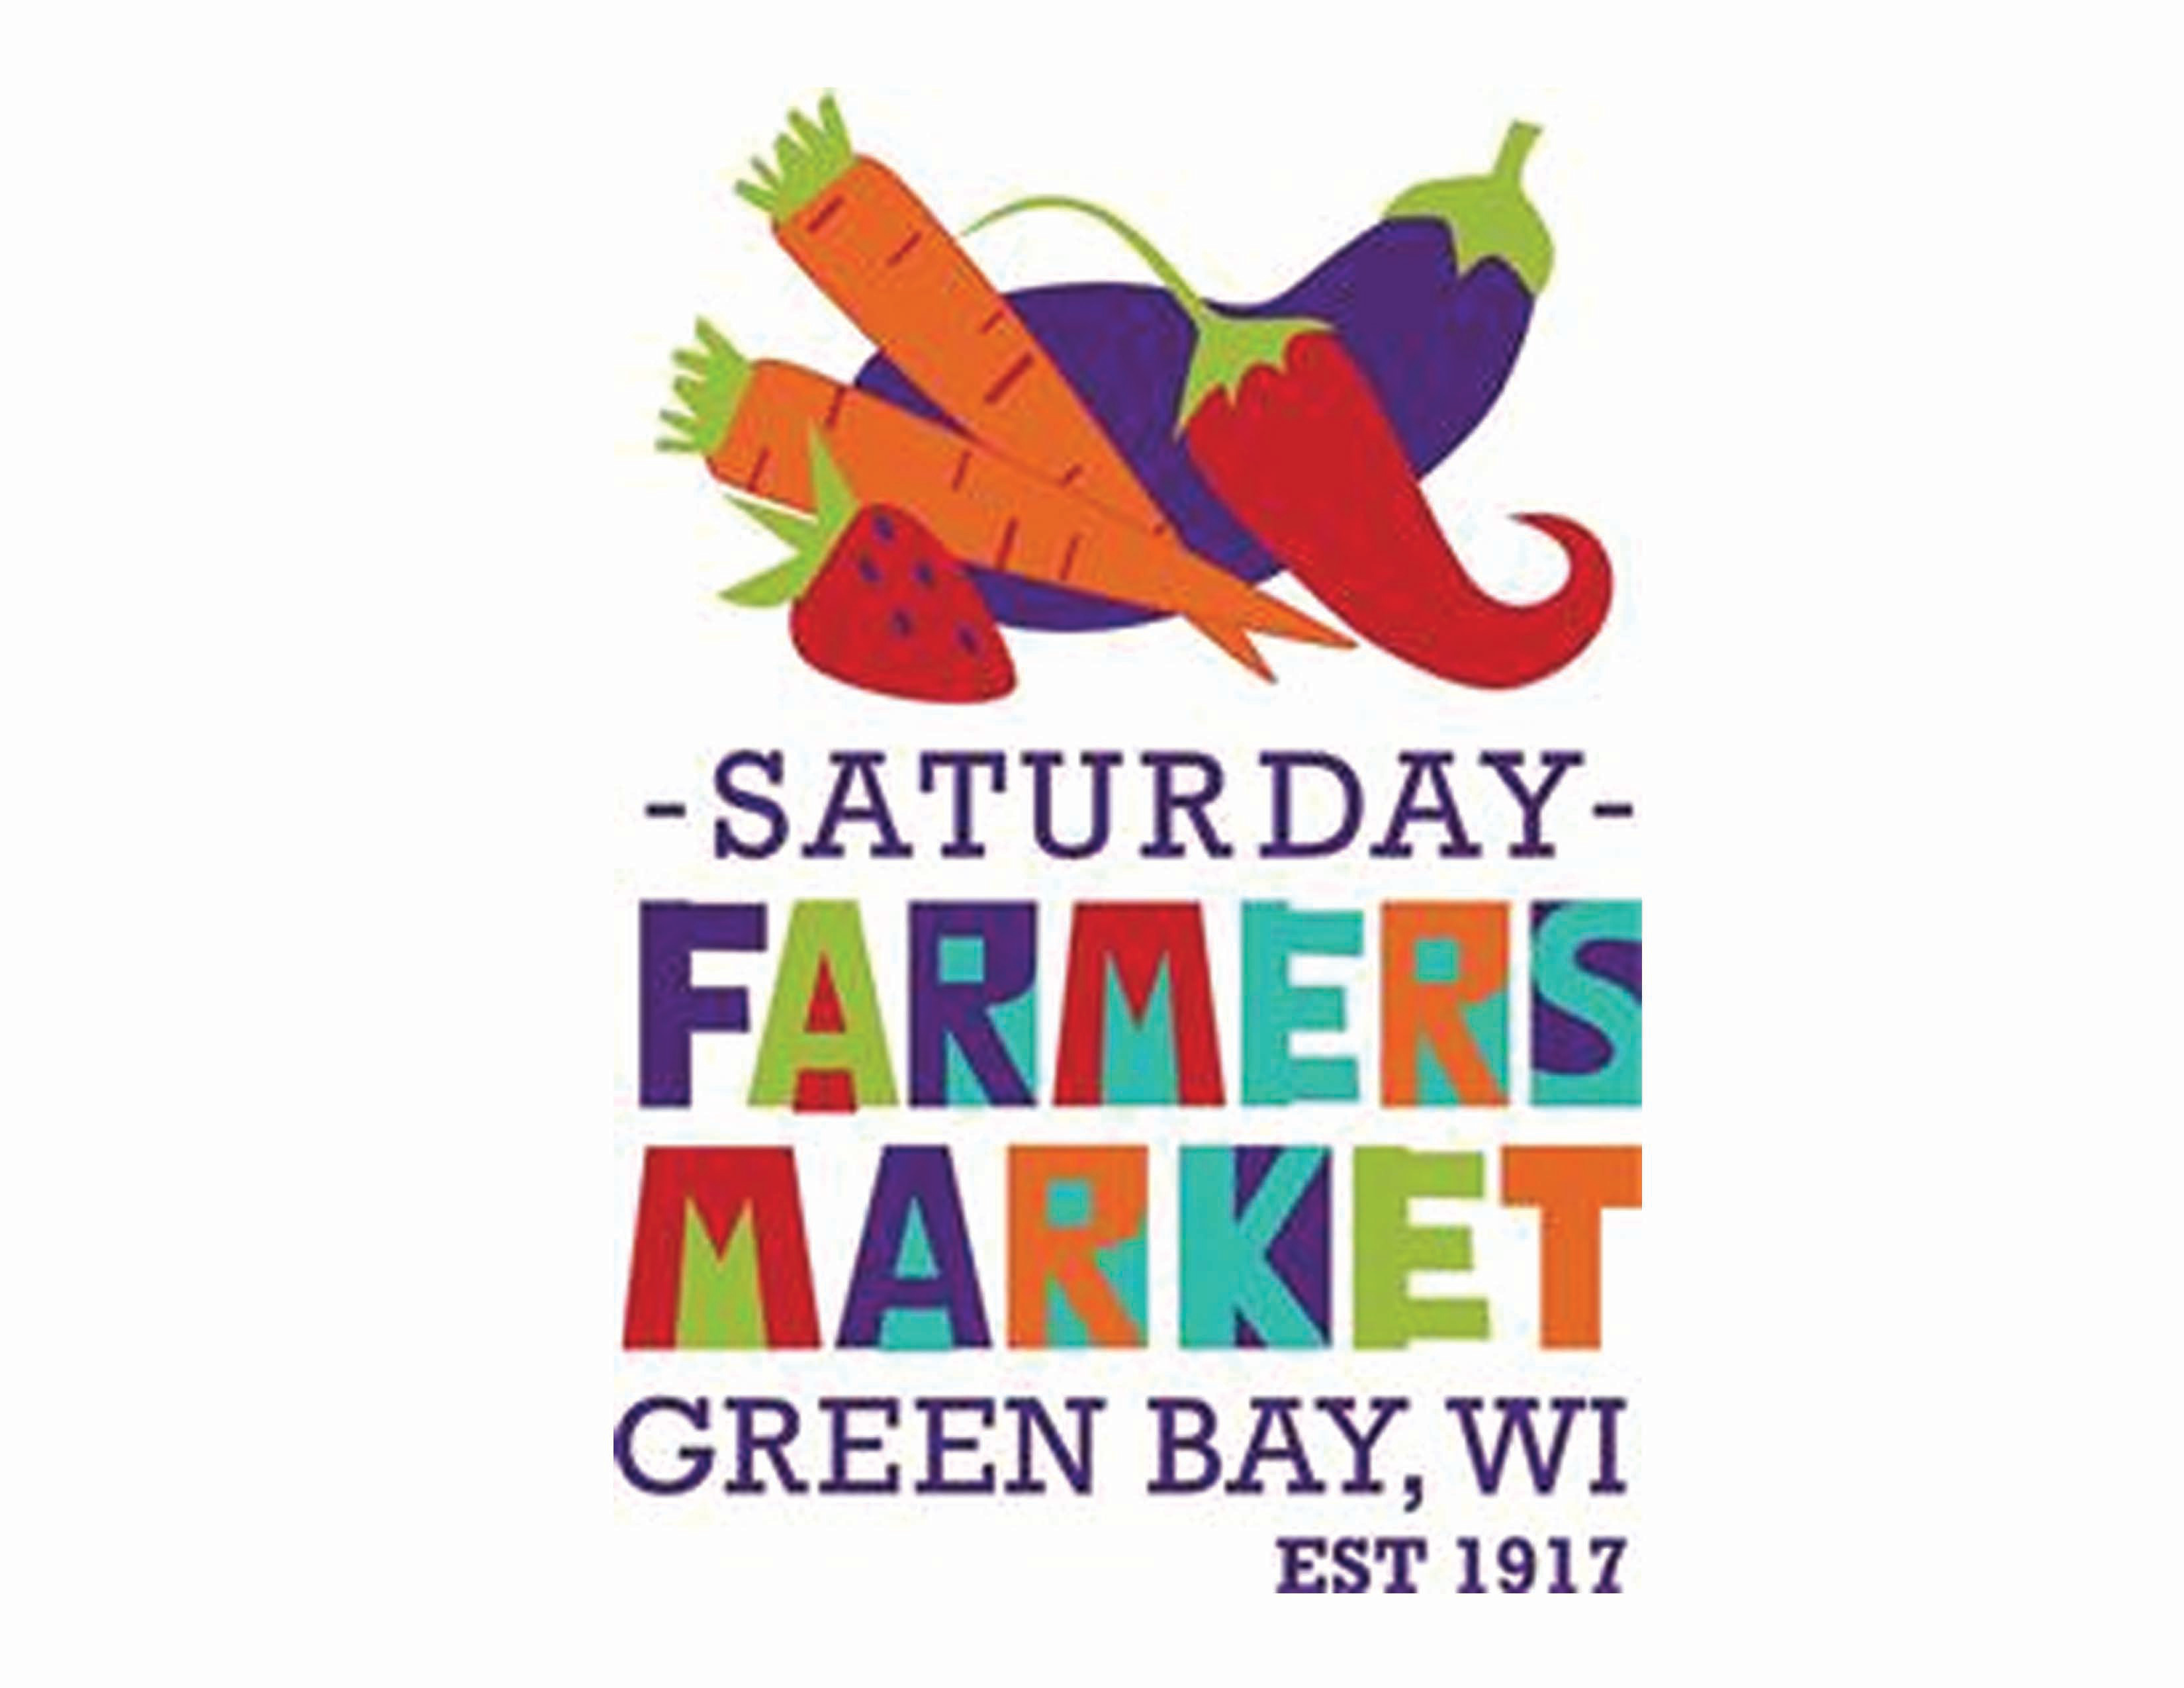 Green Bays Farmers Market